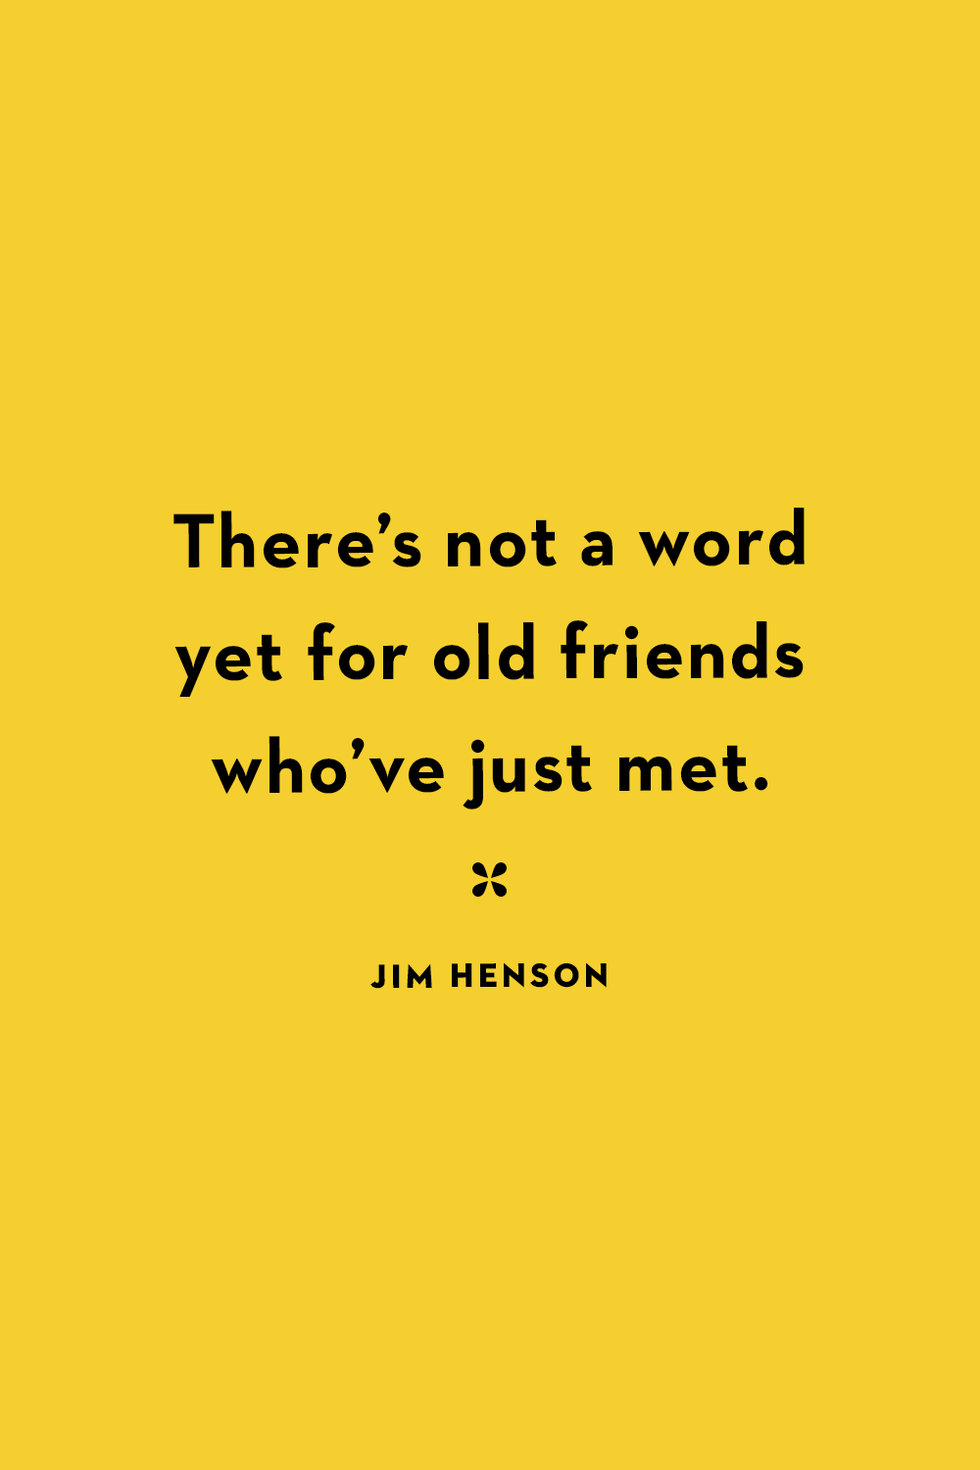 friendship-day-quotes-12